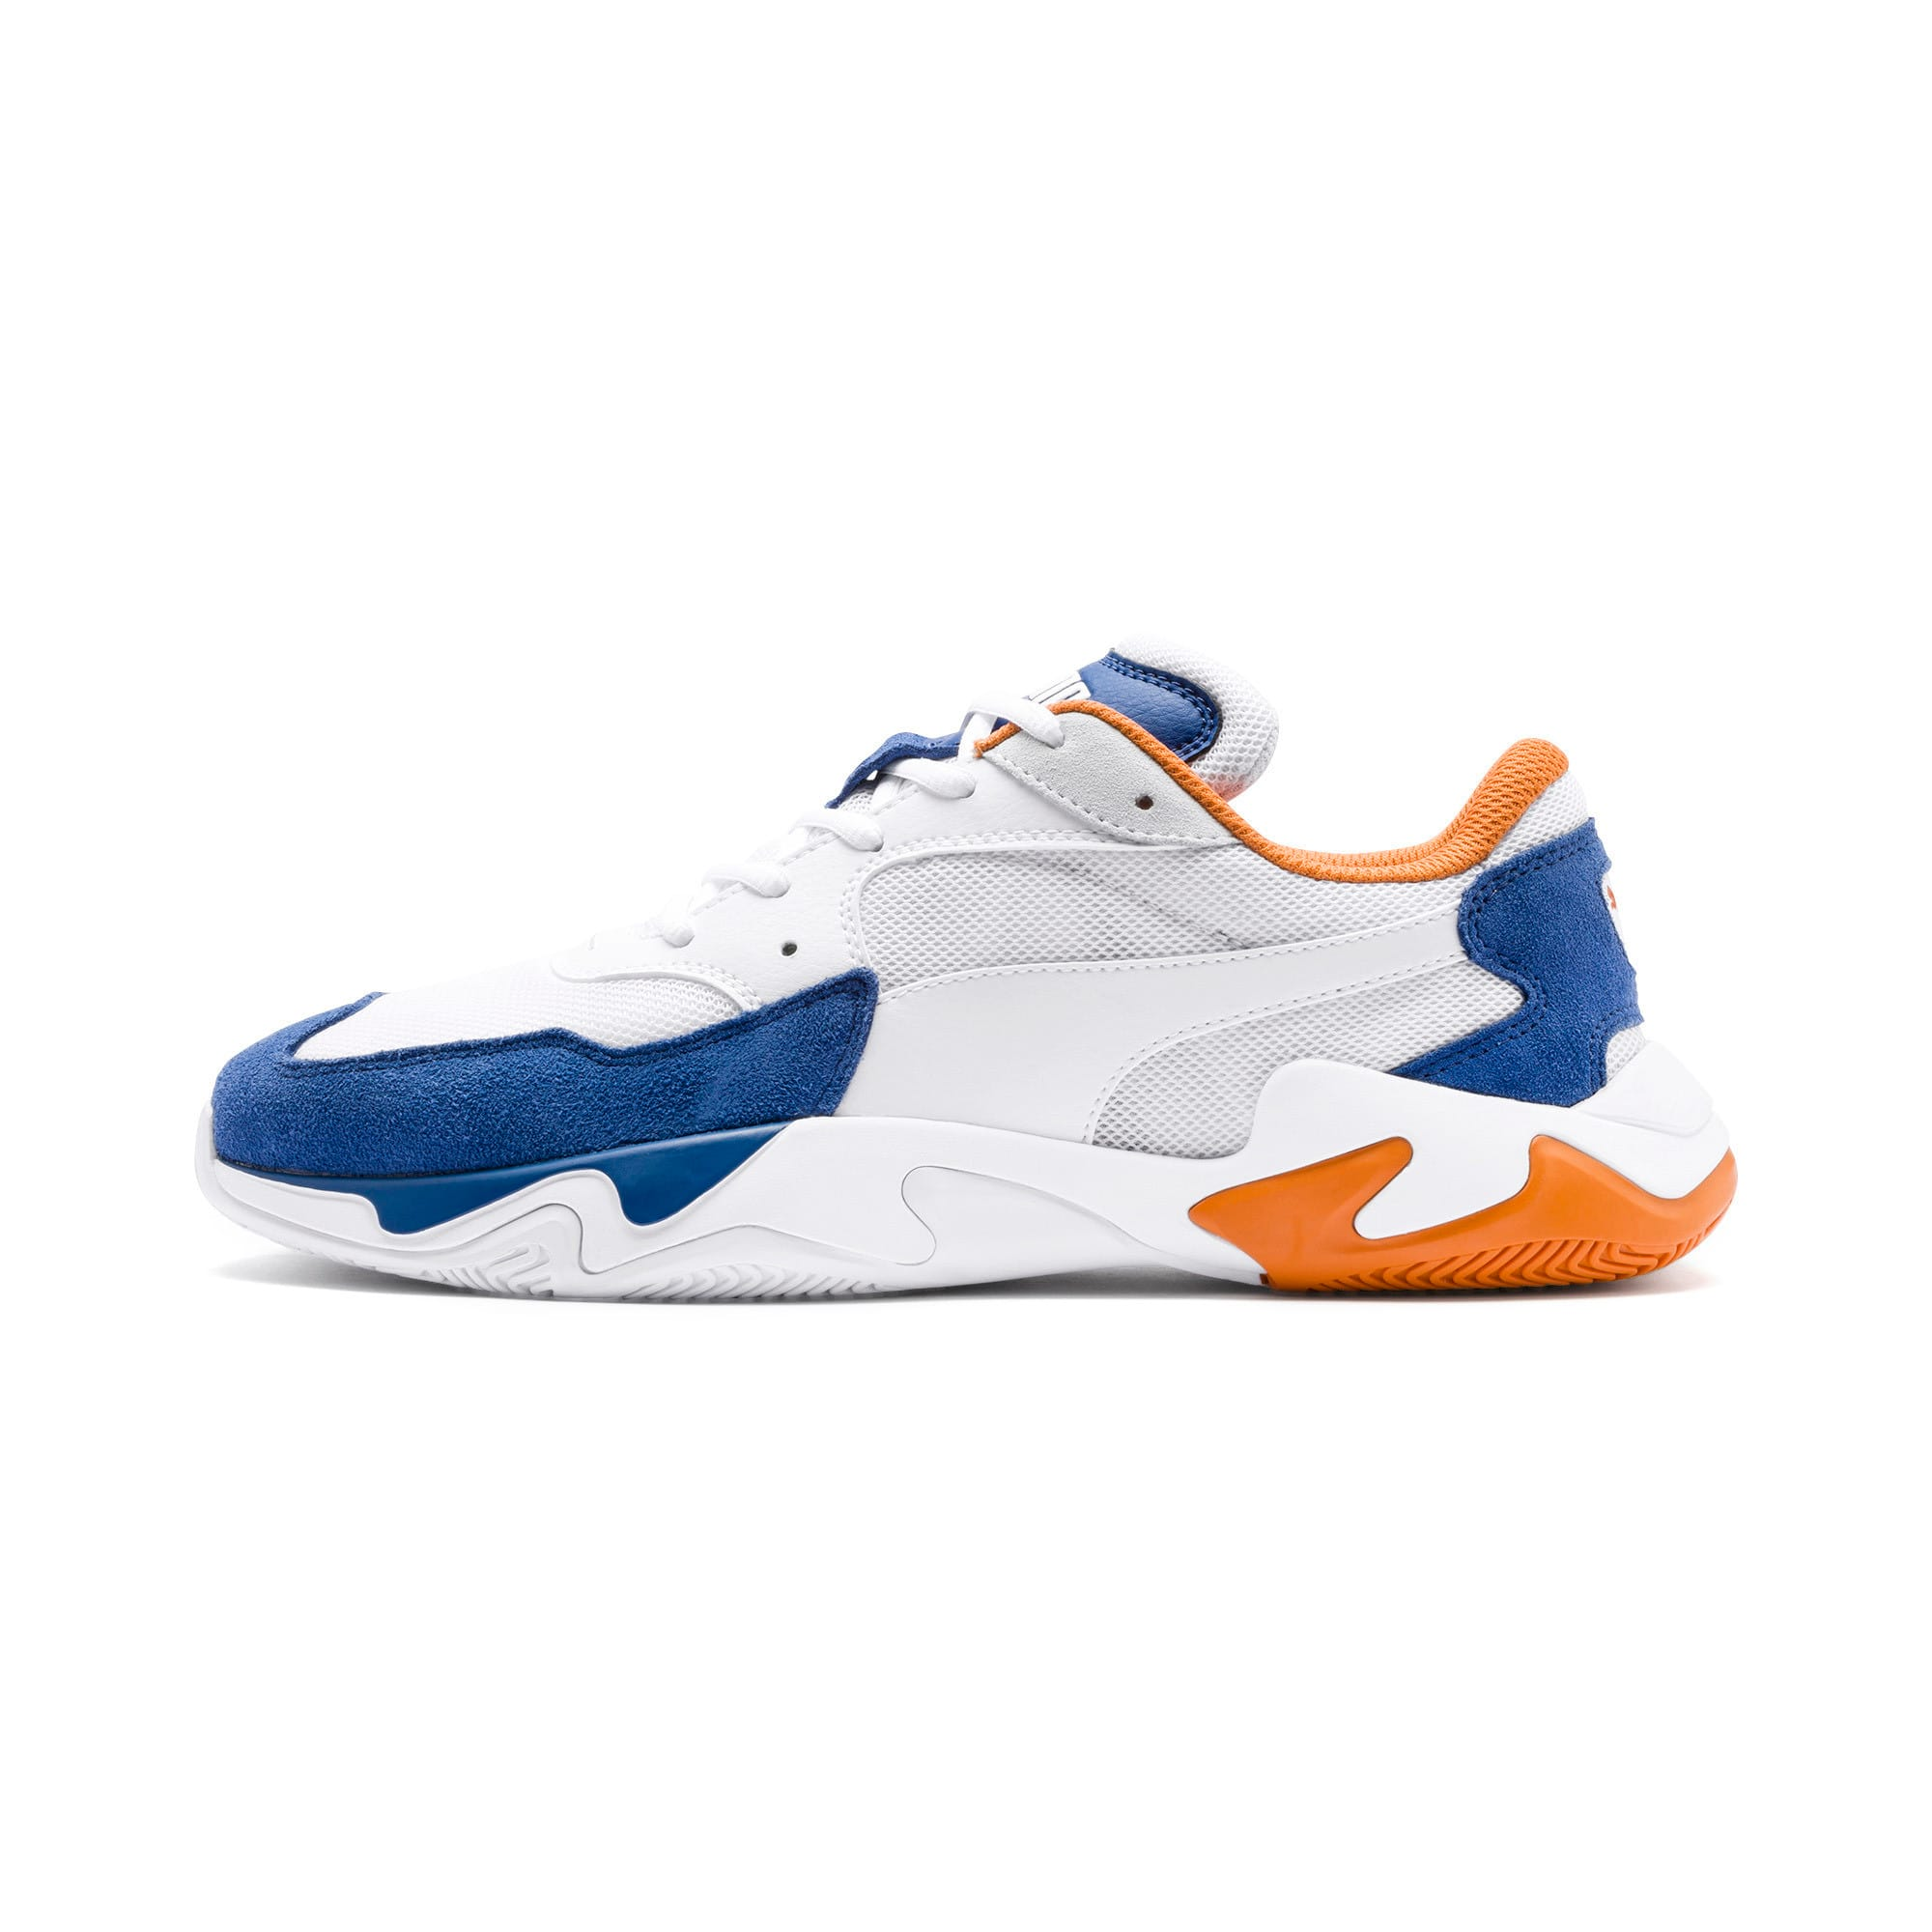 Thumbnail 1 of Storm Adrenaline Sneakers, Galaxy Blue-Puma White, medium